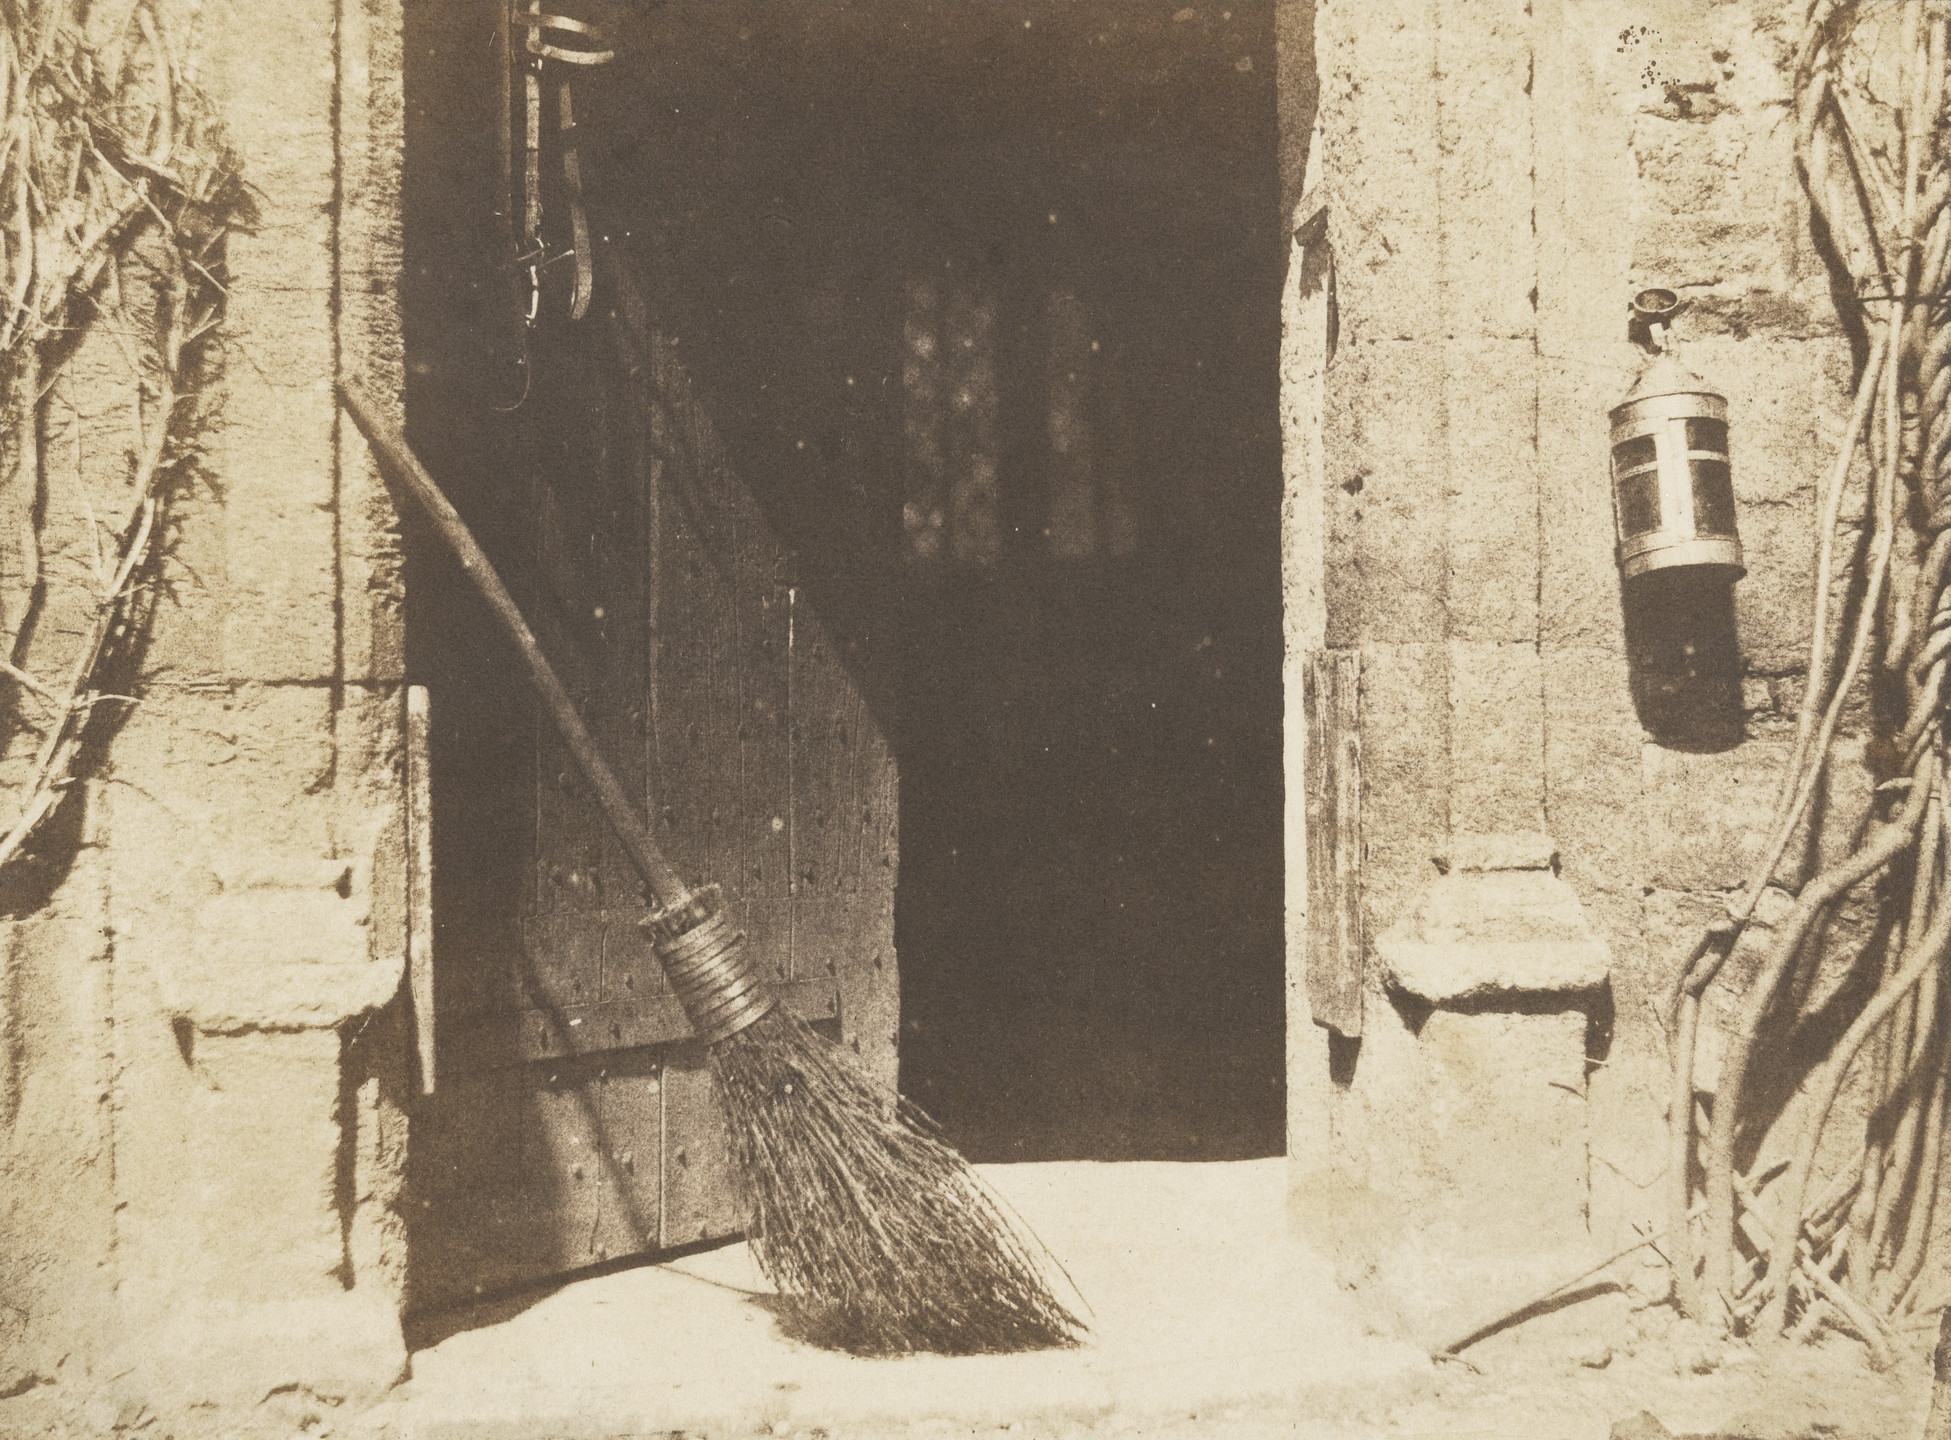 William Henry Fox Talbot. The Open Door. Before May 1844